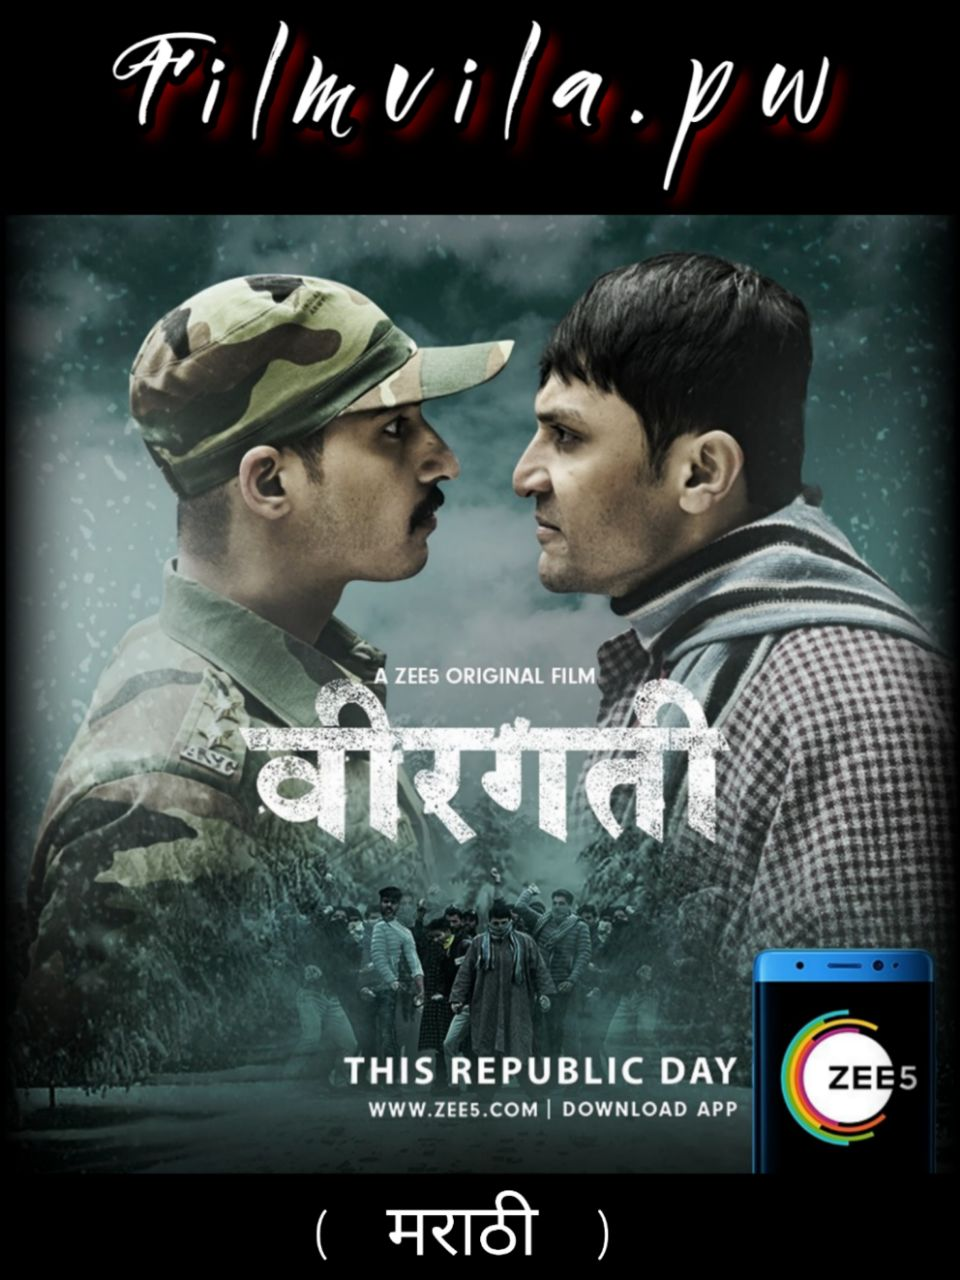 Veergati (2019) Marathi (मराठी) 720p WEB-DL x264 AAC 750MB MKV